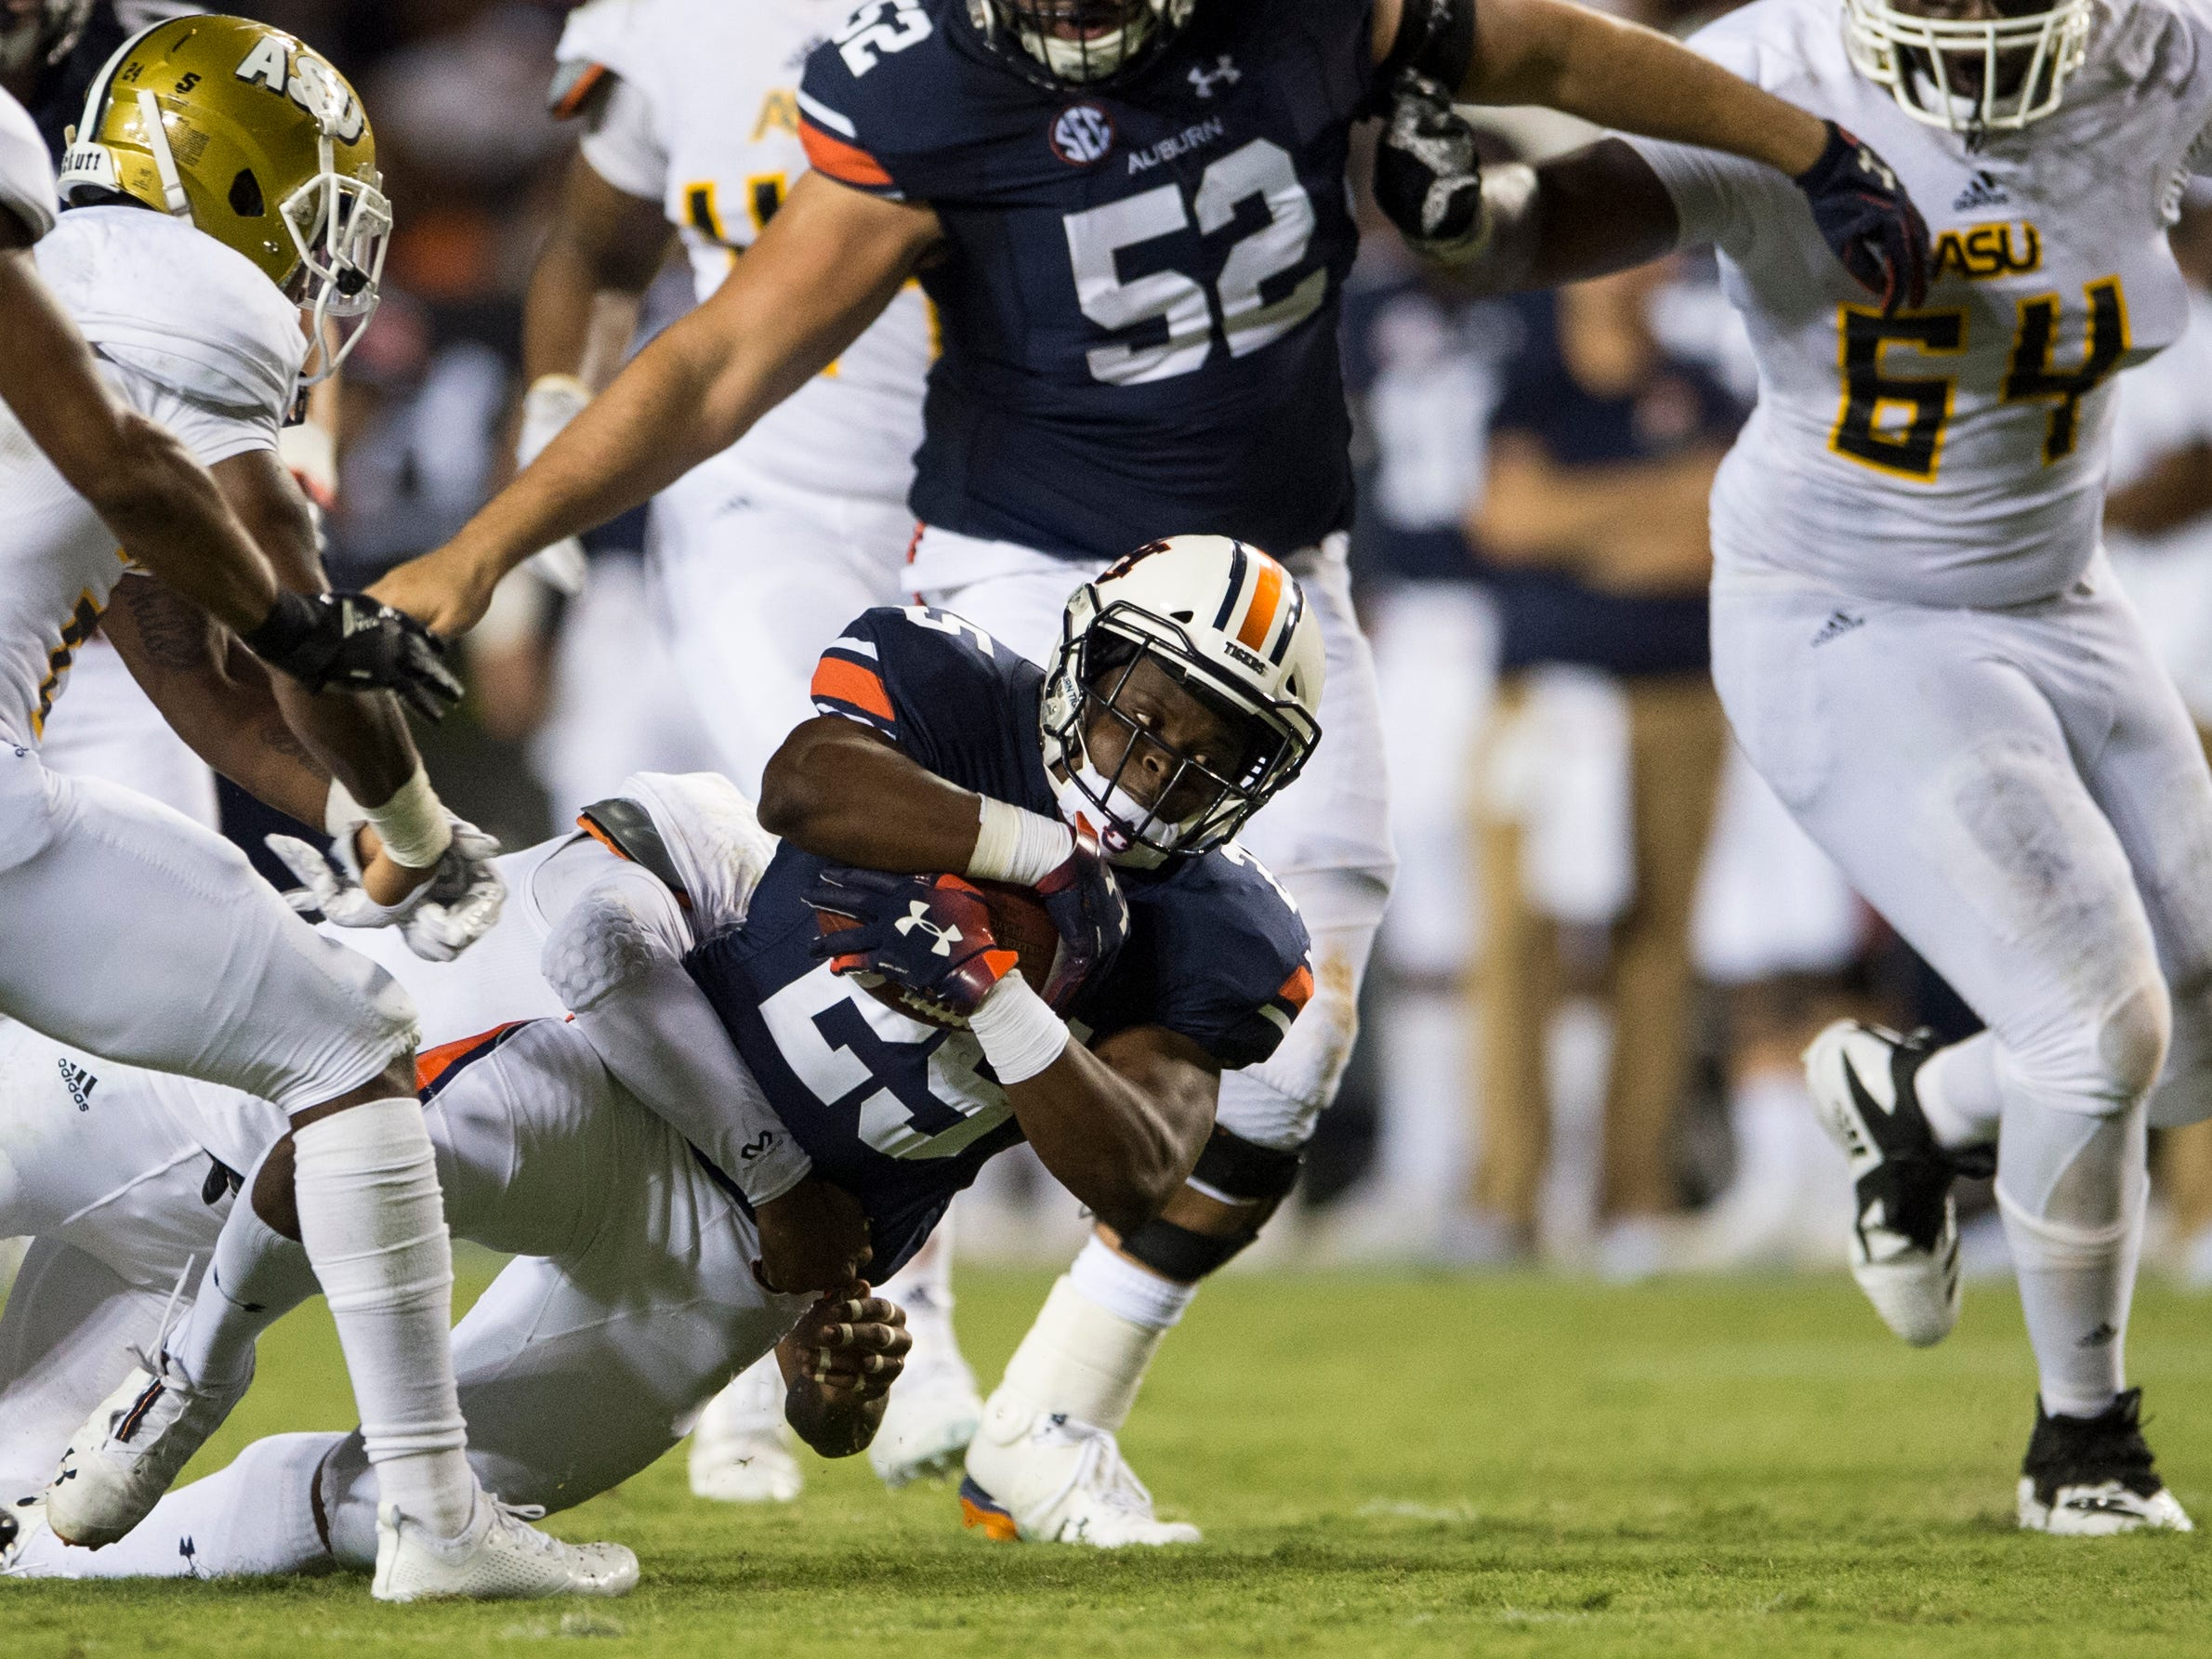 Auburn's Shaun Shivers (25) is tackled by Alabama State's Kurron Ramsey (47) at Jordan-Hare Stadium in Auburn, Ala., on Saturday, Sept. 8, 2018. Auburn defeated Alabama State 63-9.